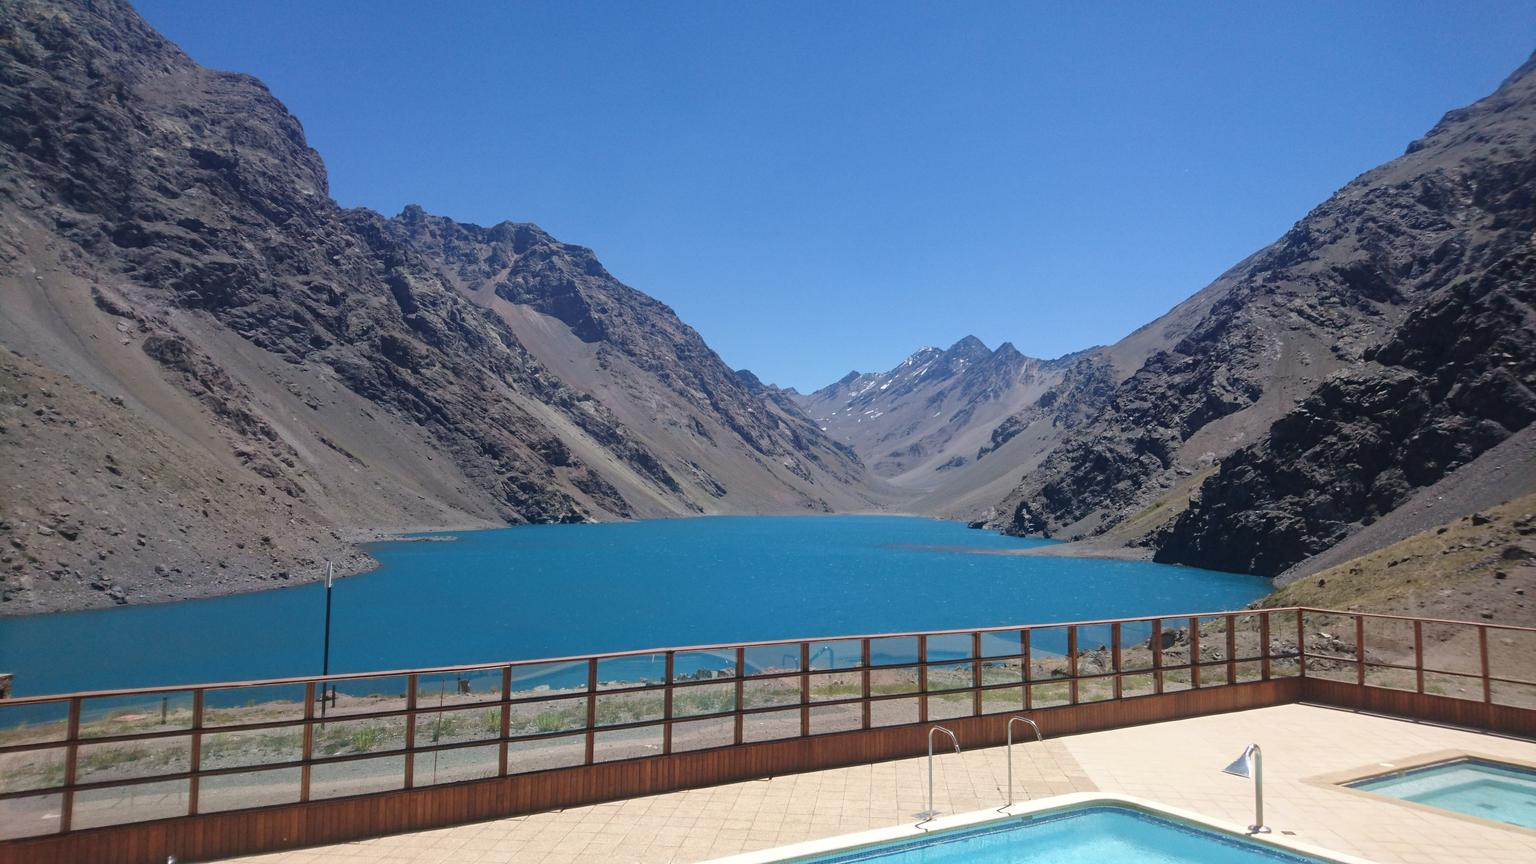 Inca Lagoon in Portillo Andes Mountains and Tasting at San Esteban Vineyard from Santiago